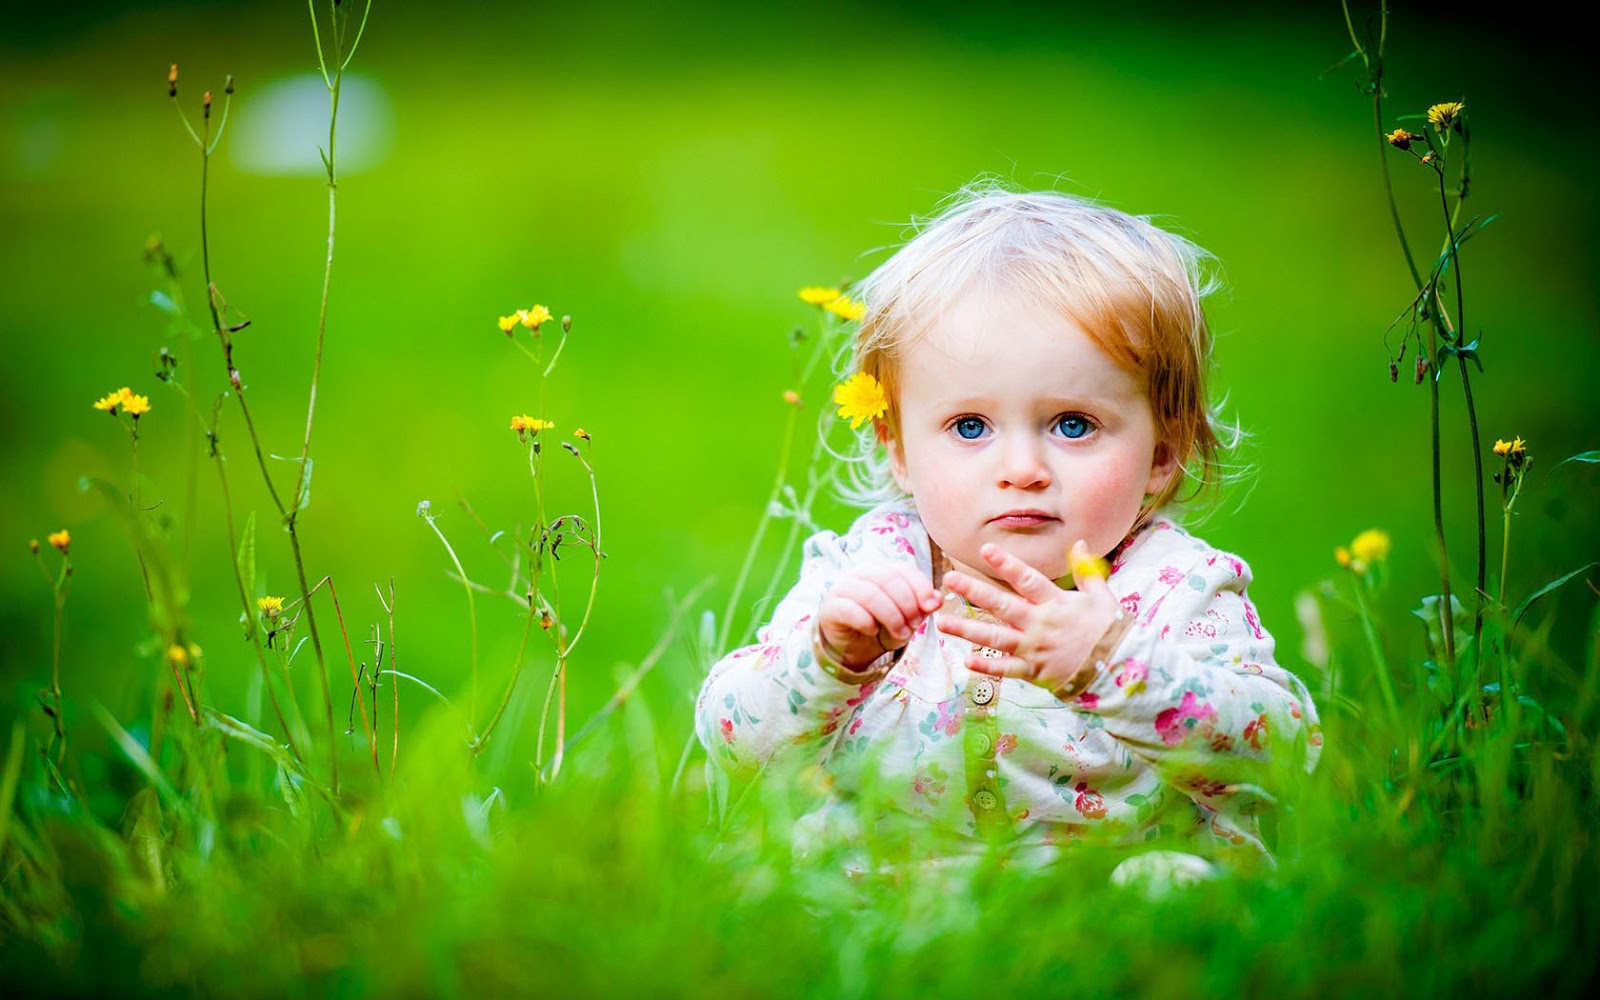 Cute Baby pictures collection hd Eilac HD Wallpapers Pinterest